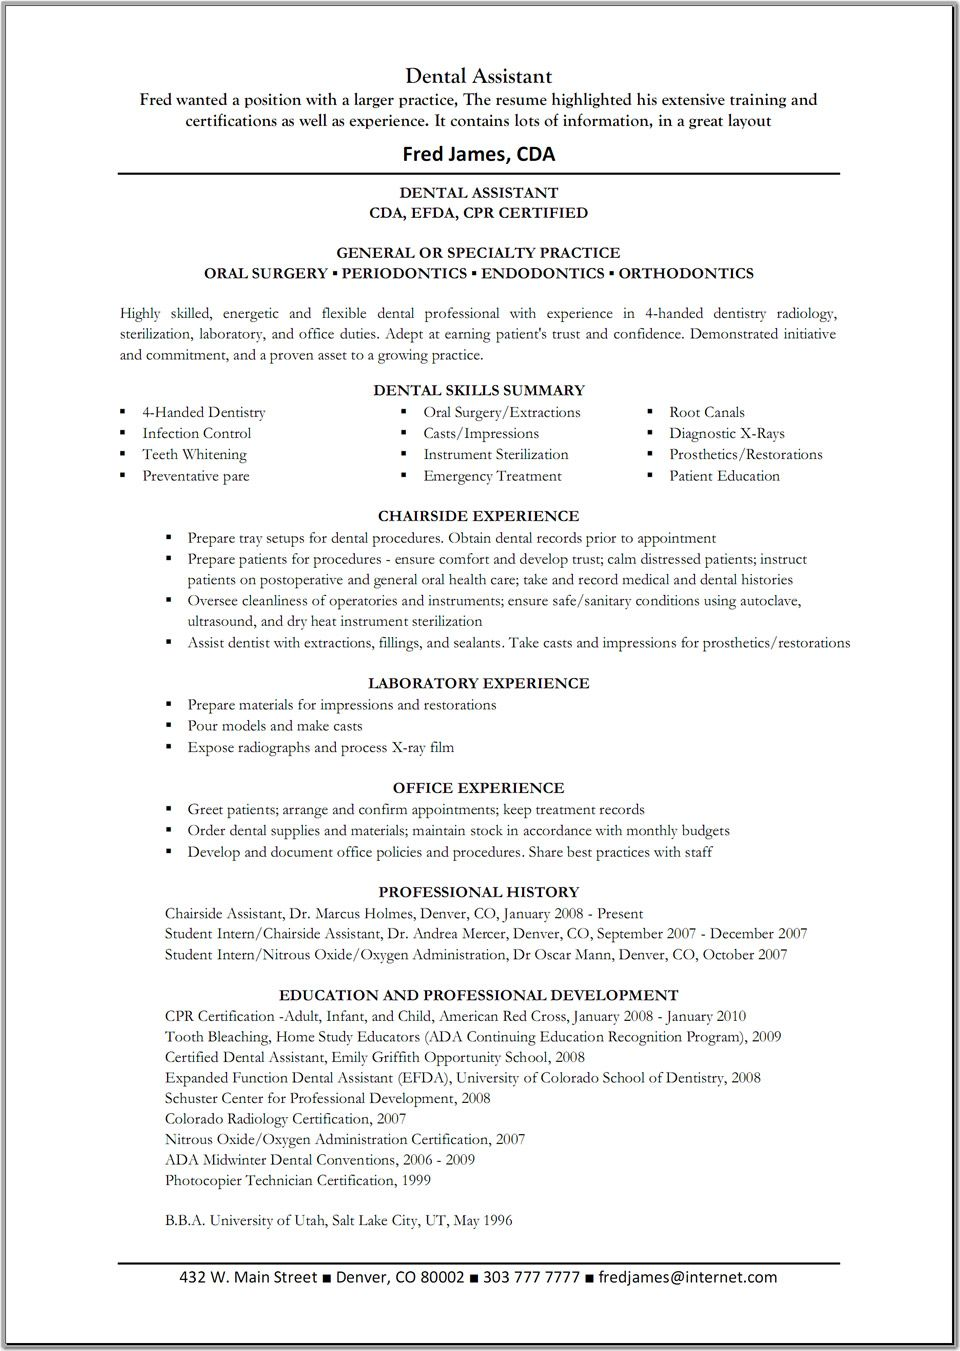 Exceptional Dental Assistant Resume Template | Great Resume Templates